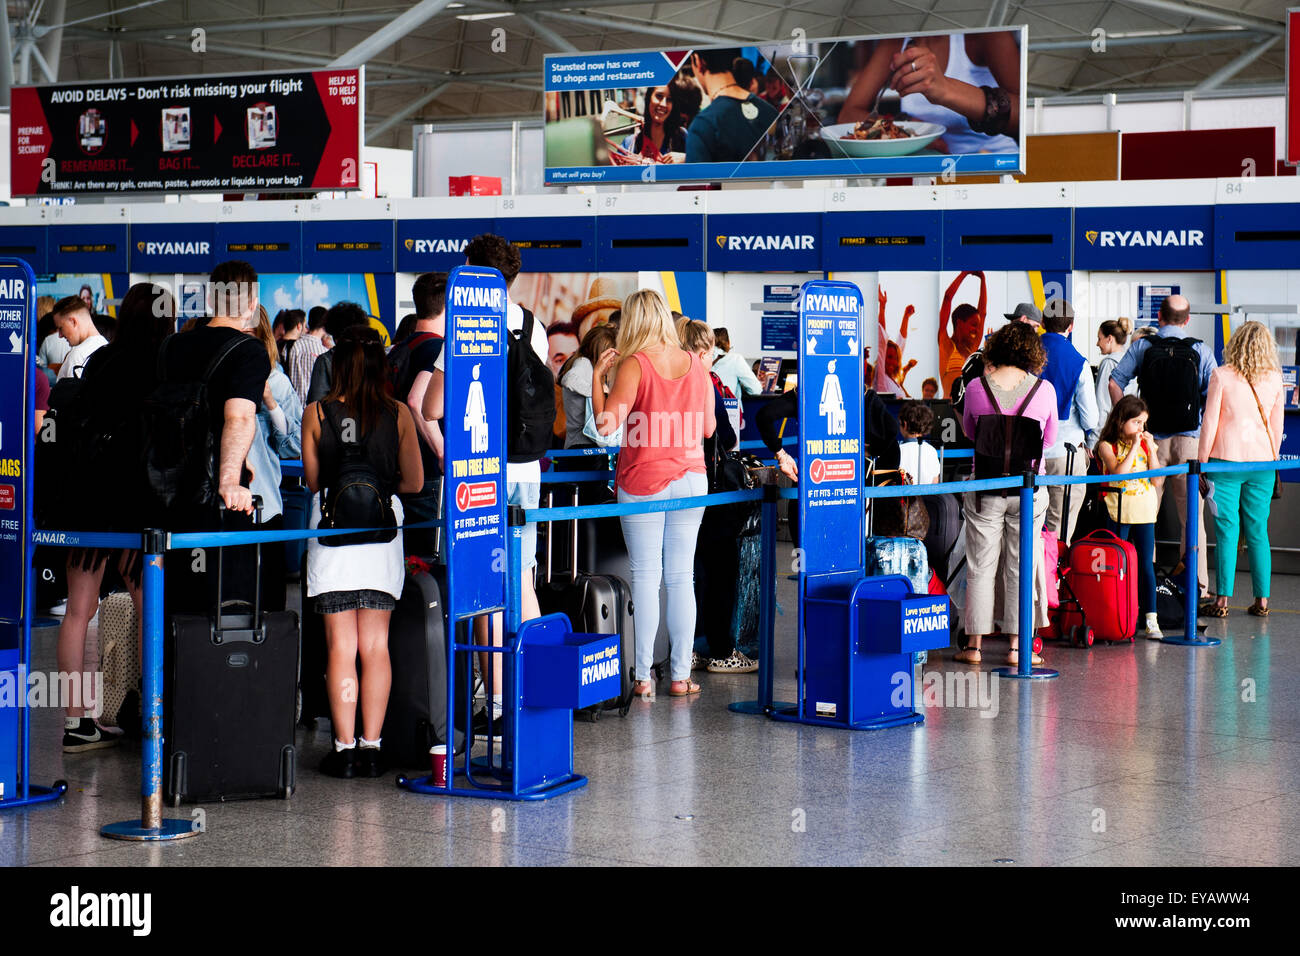 Passengers queue to drop luggage at busy Ryan Air check in desk in Stansted Airport, UK - Stock Image